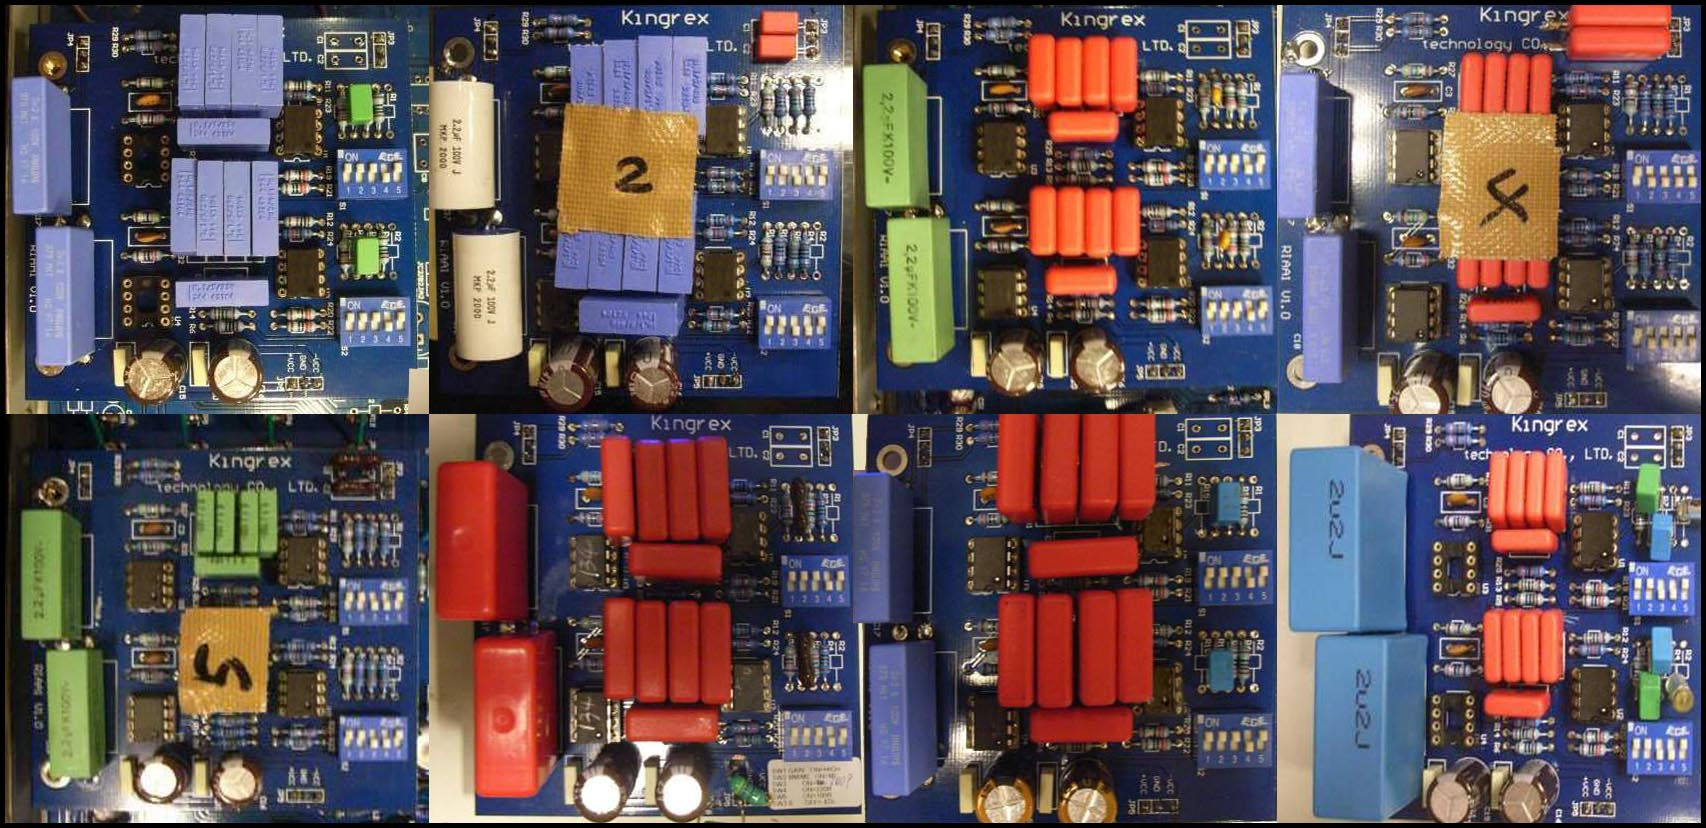 6moons Audio Reviews Kingrex Preference Laminated Electrical Board Usually Fitted With Electronic The Major Difference Are Various Combinations Of Op Amps Preamplifier Ic And Capacitors In Finalized Production Opa134s Factory